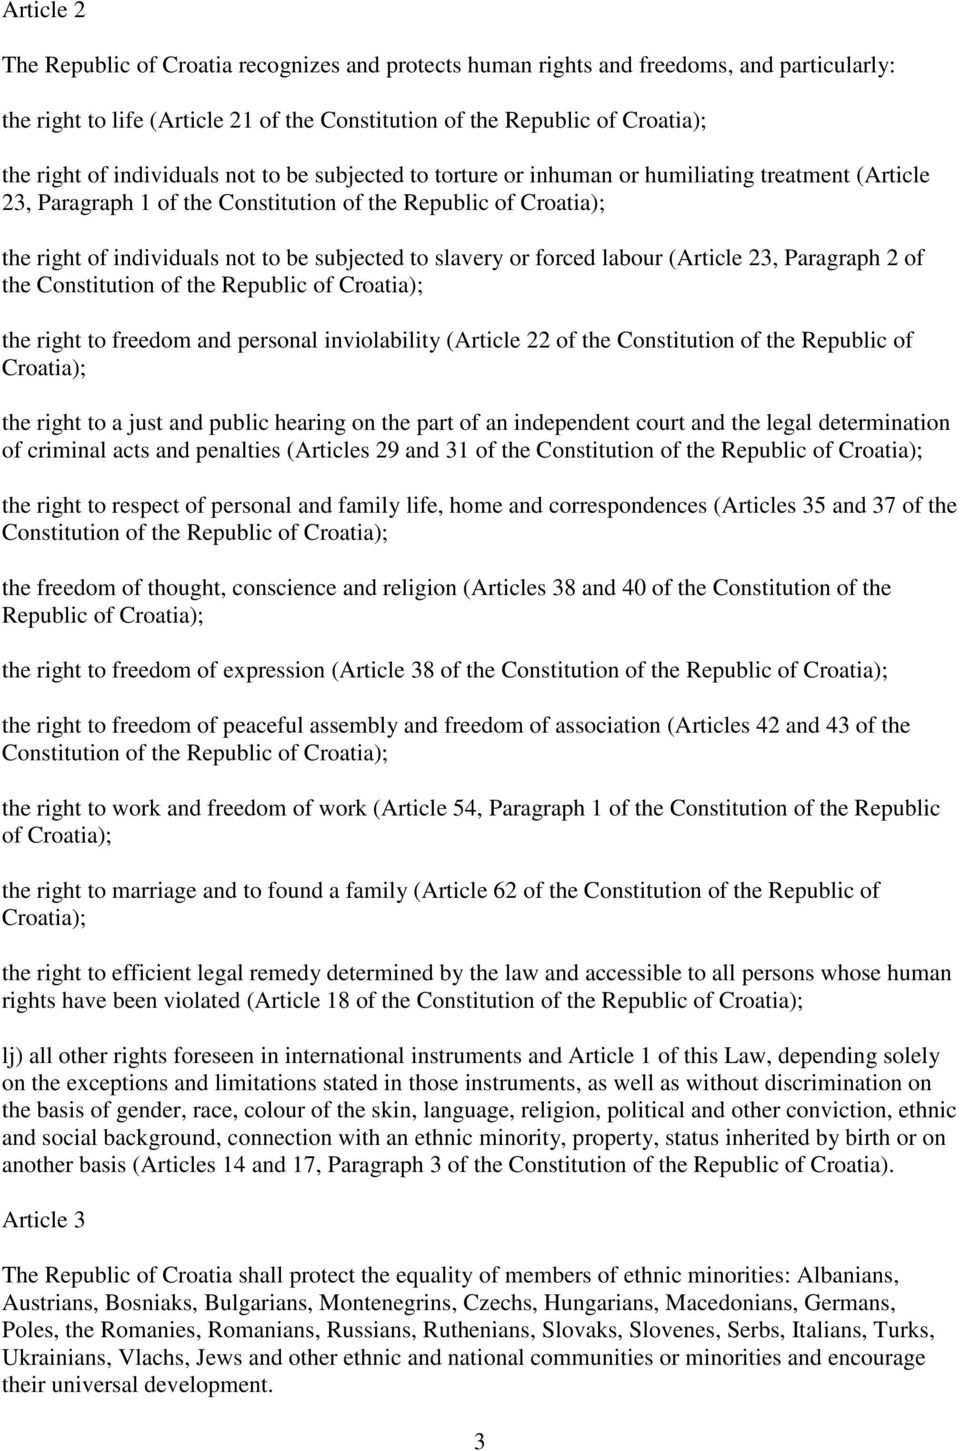 to slavery or forced labour (Article 23, Paragraph 2 of the Constitution of the Republic of Croatia); the right to freedom and personal inviolability (Article 22 of the Constitution of the Republic